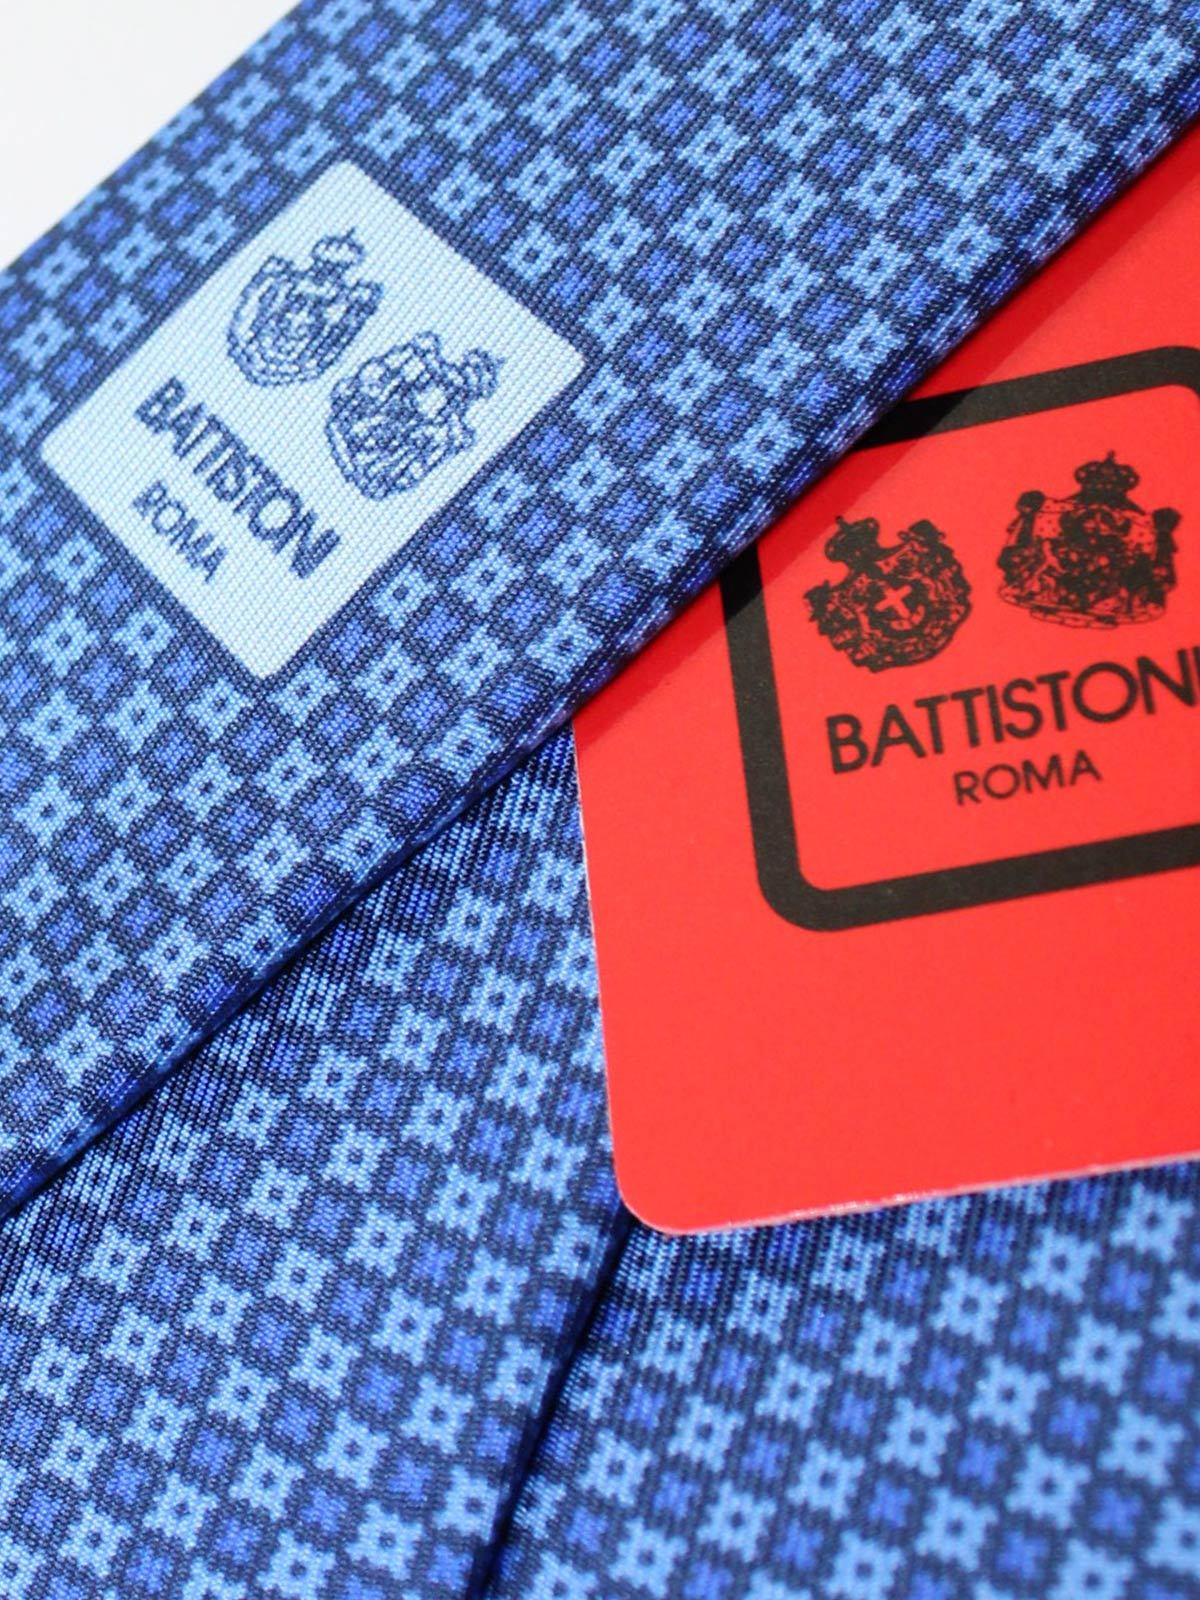 Battistoni Silk Tie Blue Geometric